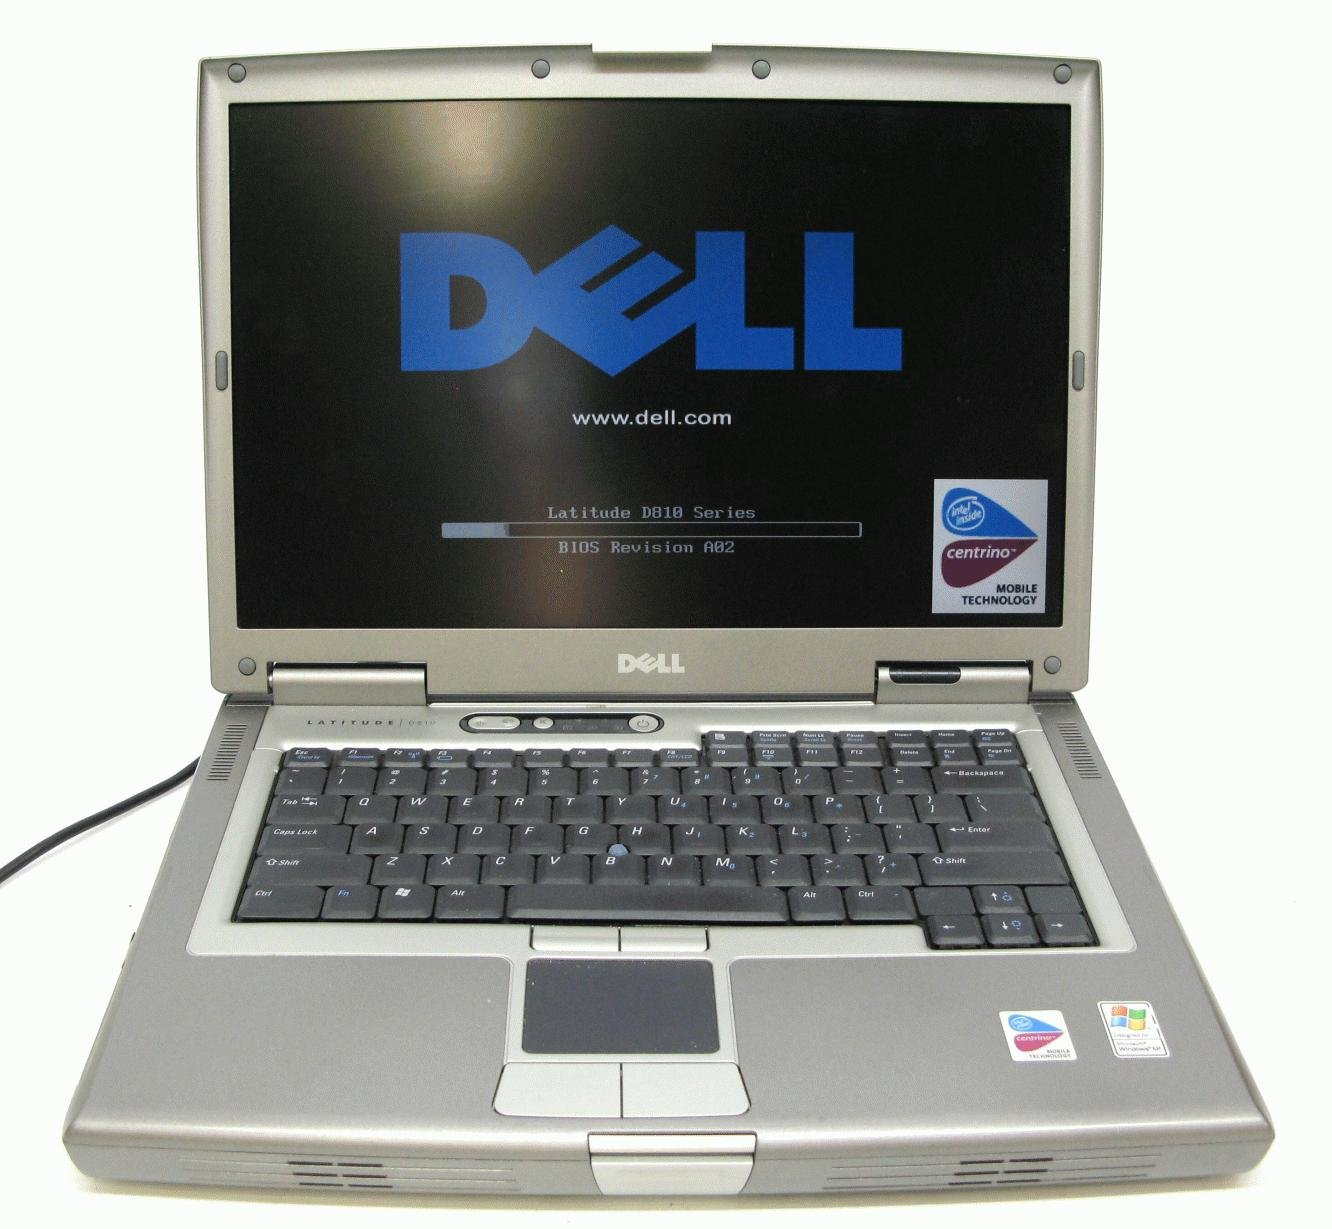 dell latitude d810 user manual various owner manual guide u2022 rh linkrepairguide today Take Apart Dell Latitude D630 Laptop Manual Dell Latitude D630 Memory Slots